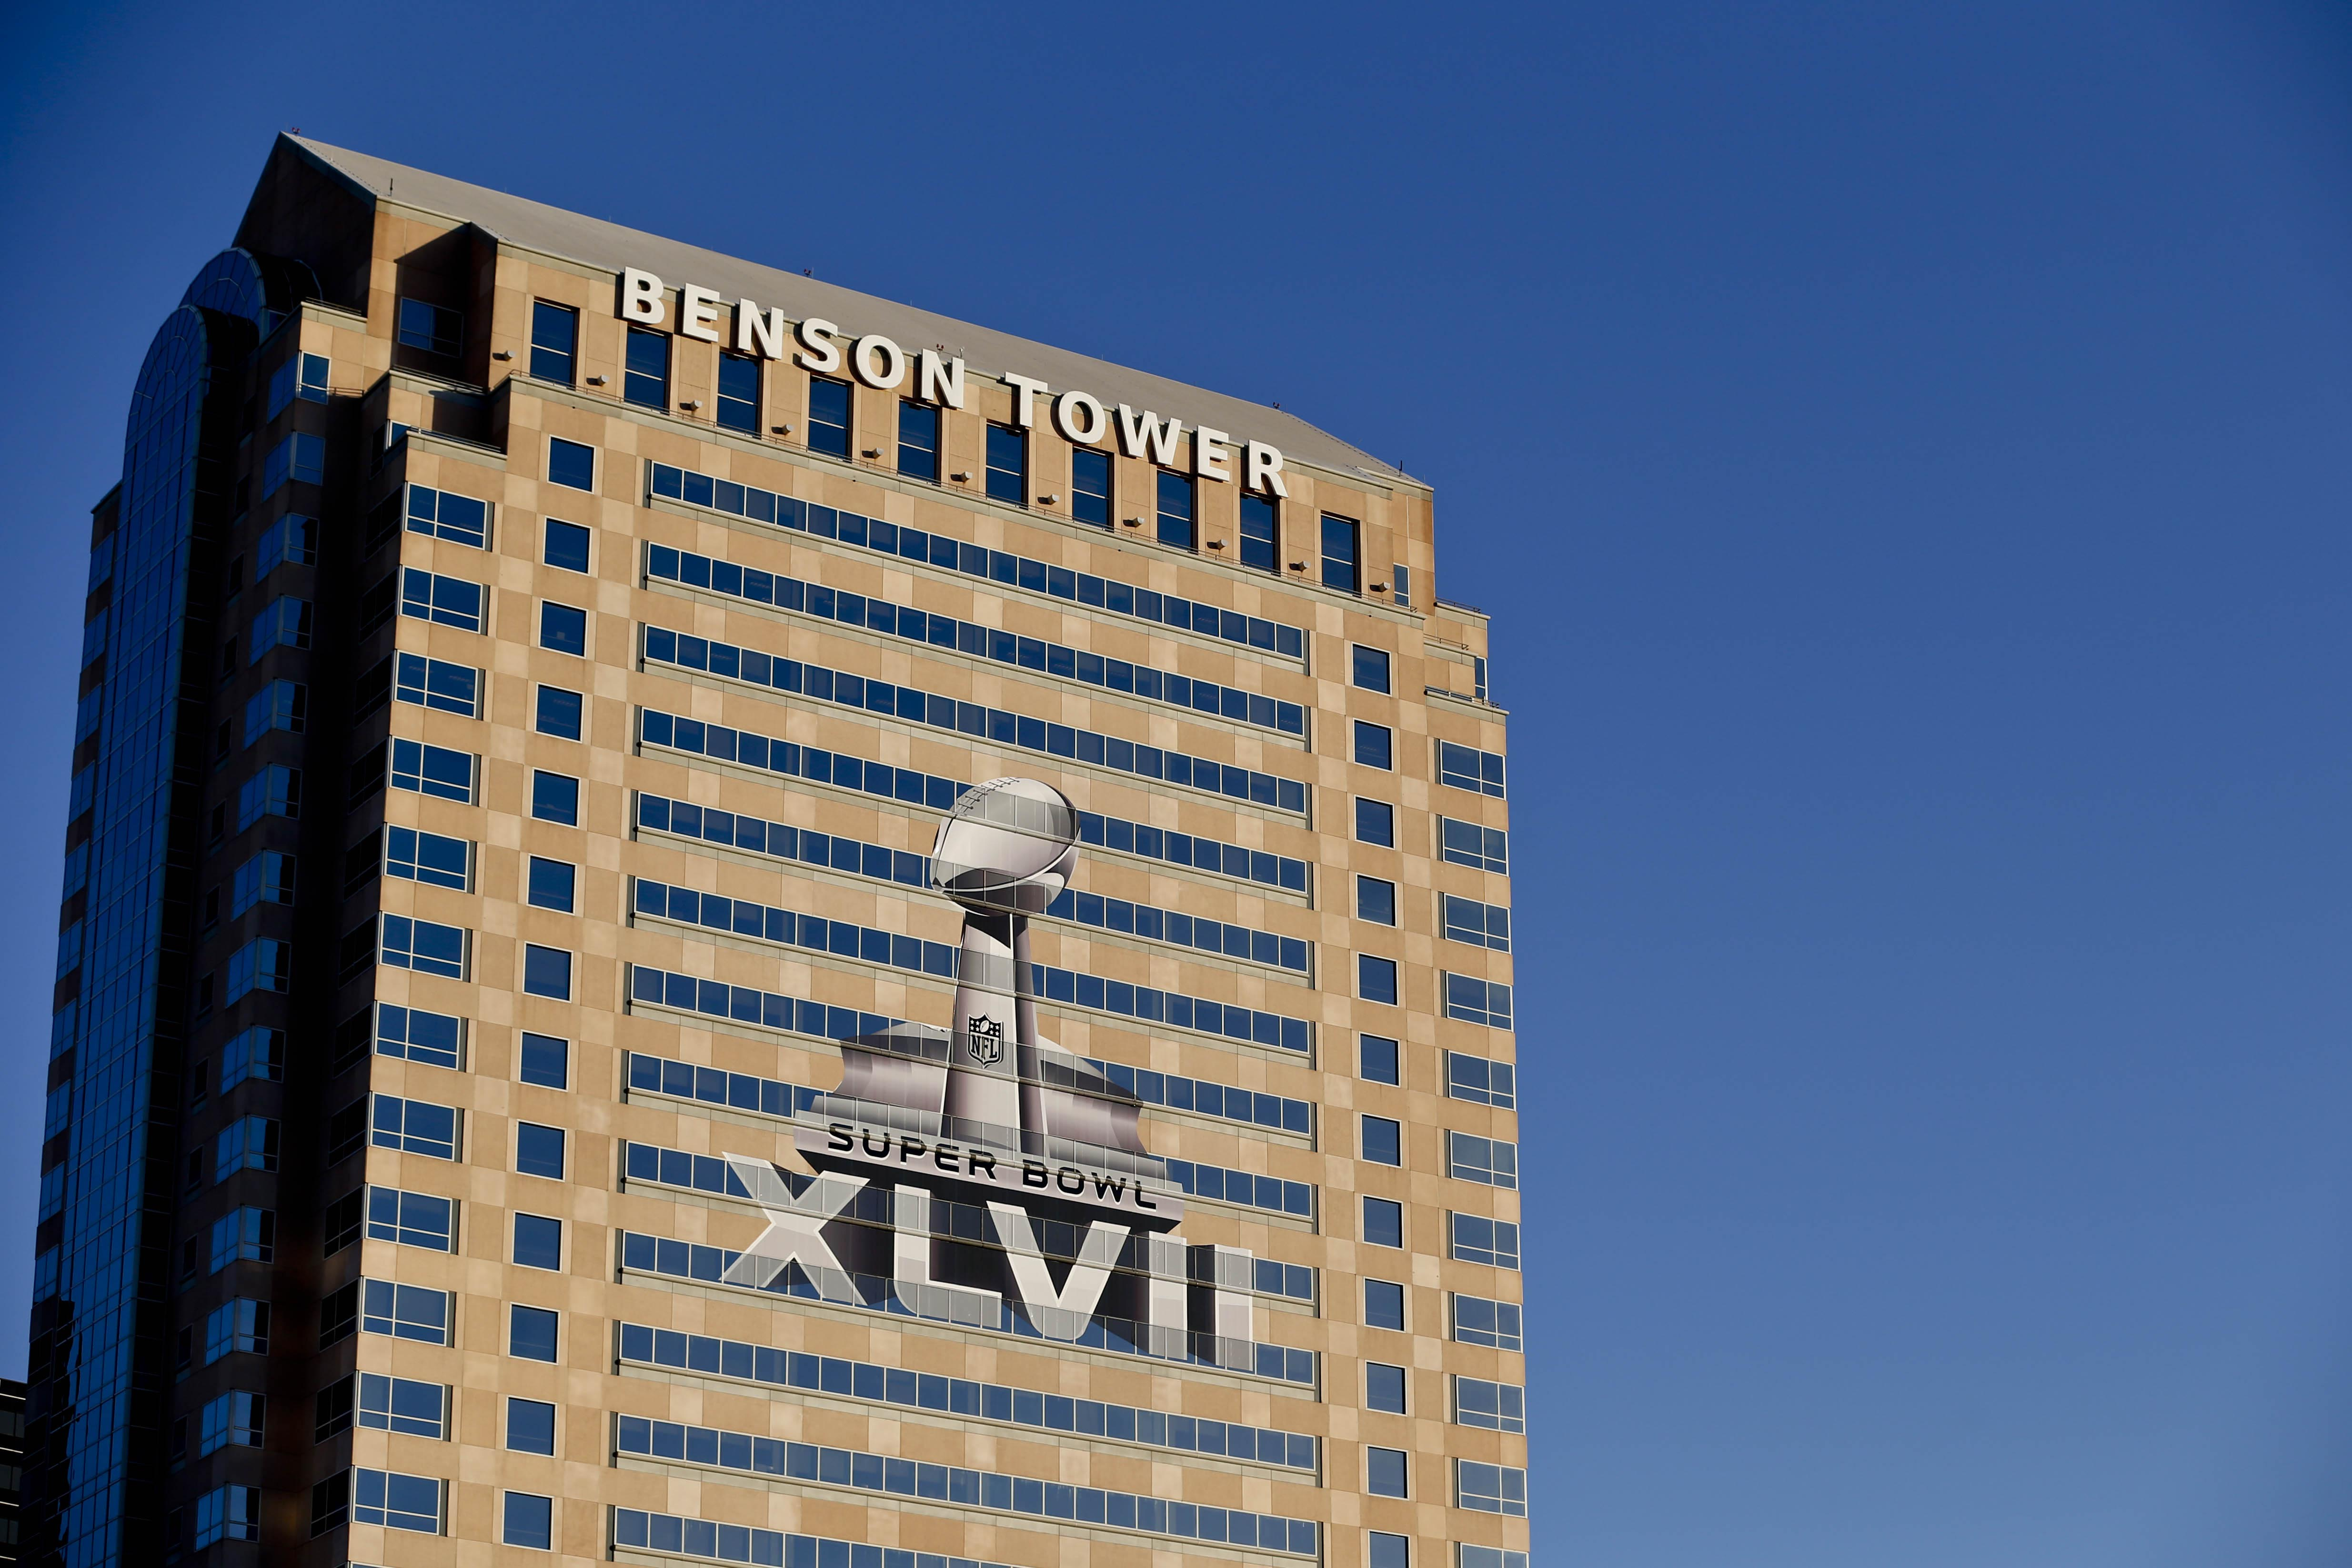 A view of the Benson Tower in New Orleans with a Super Bowl XLVII logo. (USA Today Sports)